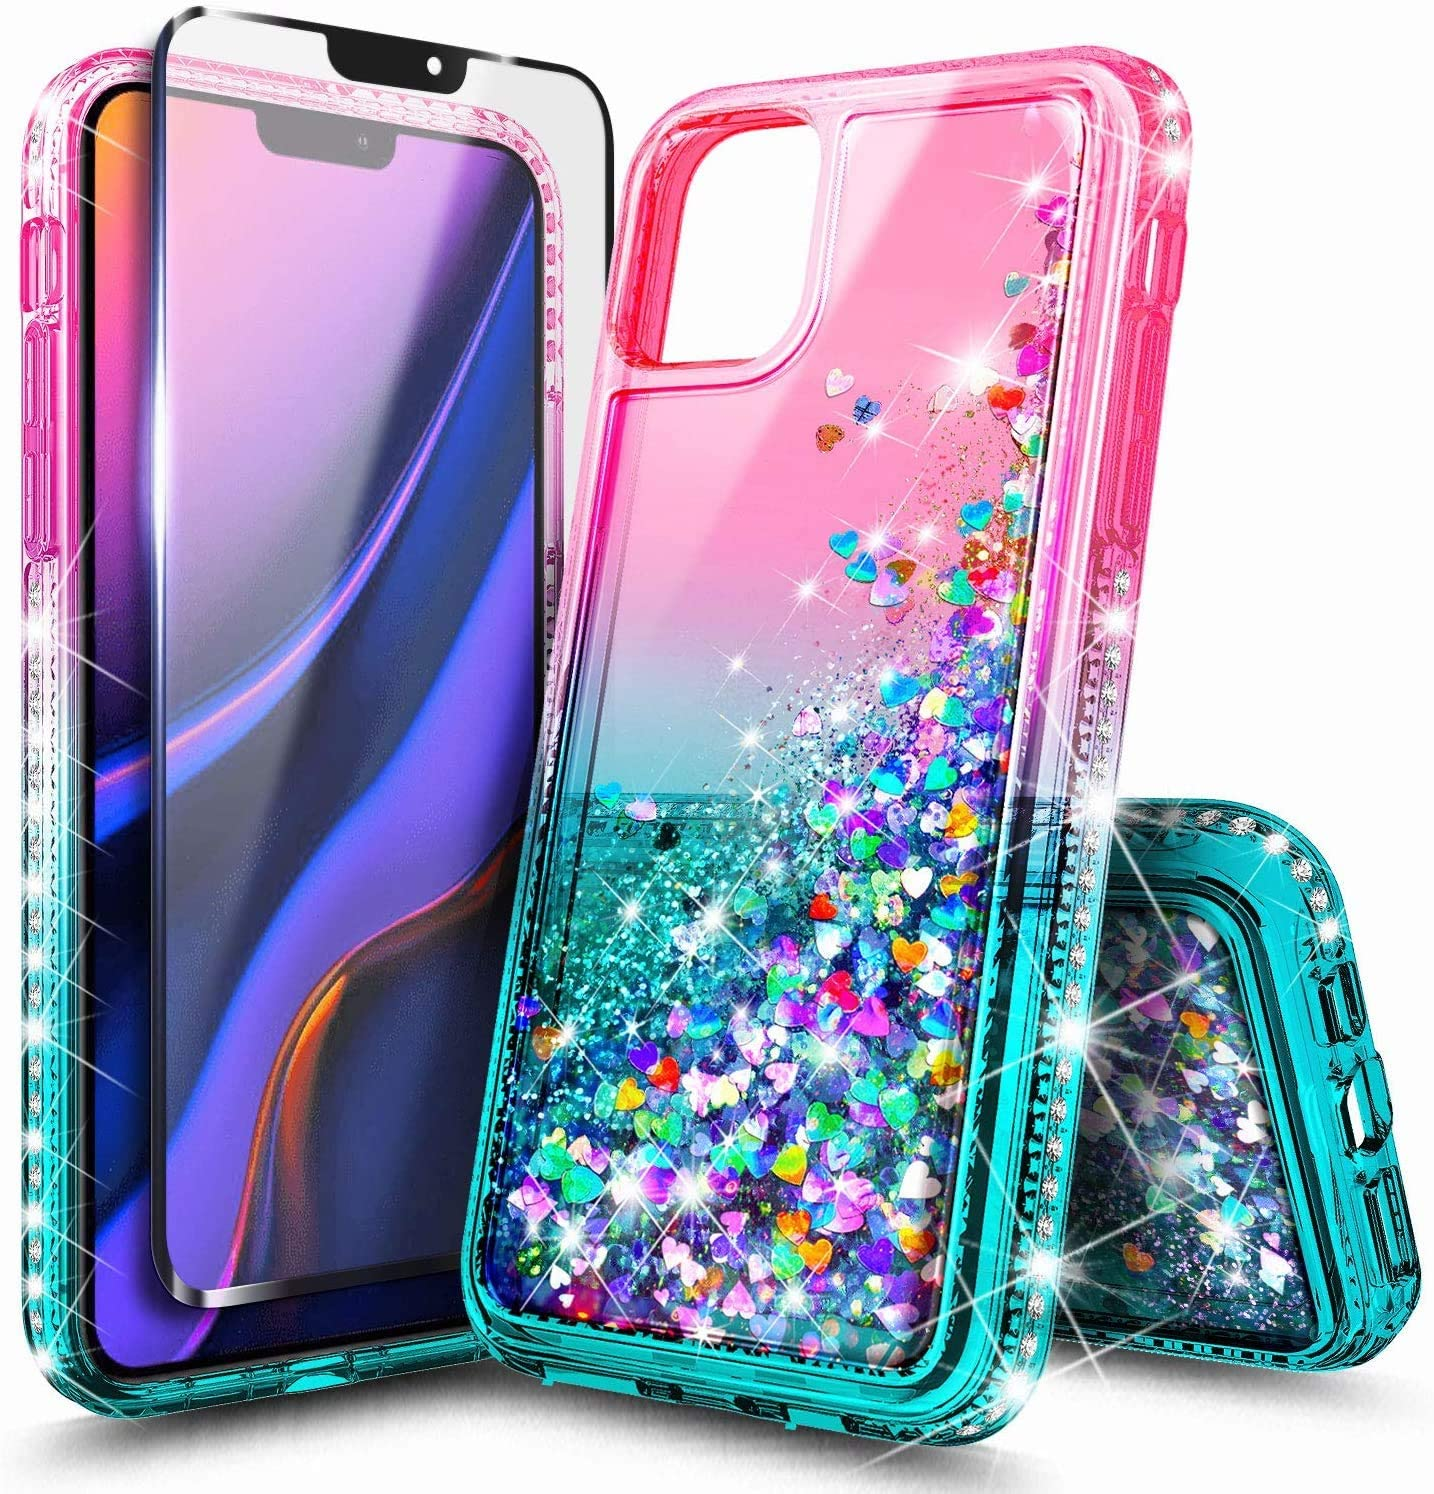 NZND Case for Google Pixel 4 XL (2019 Release) with Tempered Glass Screen Protector, Sparkle Glitter Flowing Liquid Quicksand with Shiny Bling Diamond, Women Girls Cute Phone Case Cover (Pink/Aqua)